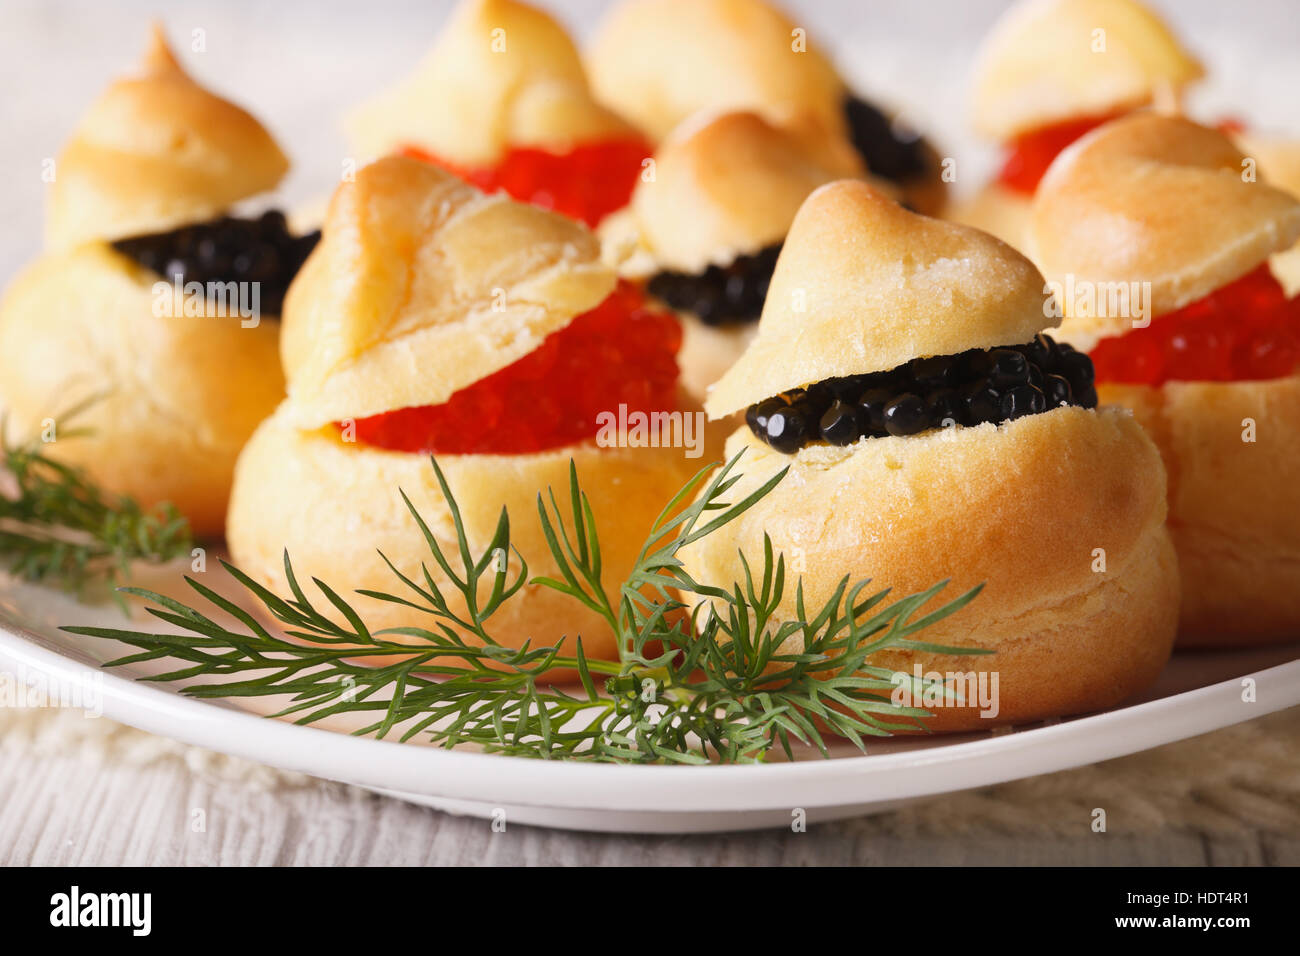 Finger food: profiteroles stuffed with red and black caviar on a plate close-up. horizontal - Stock Image